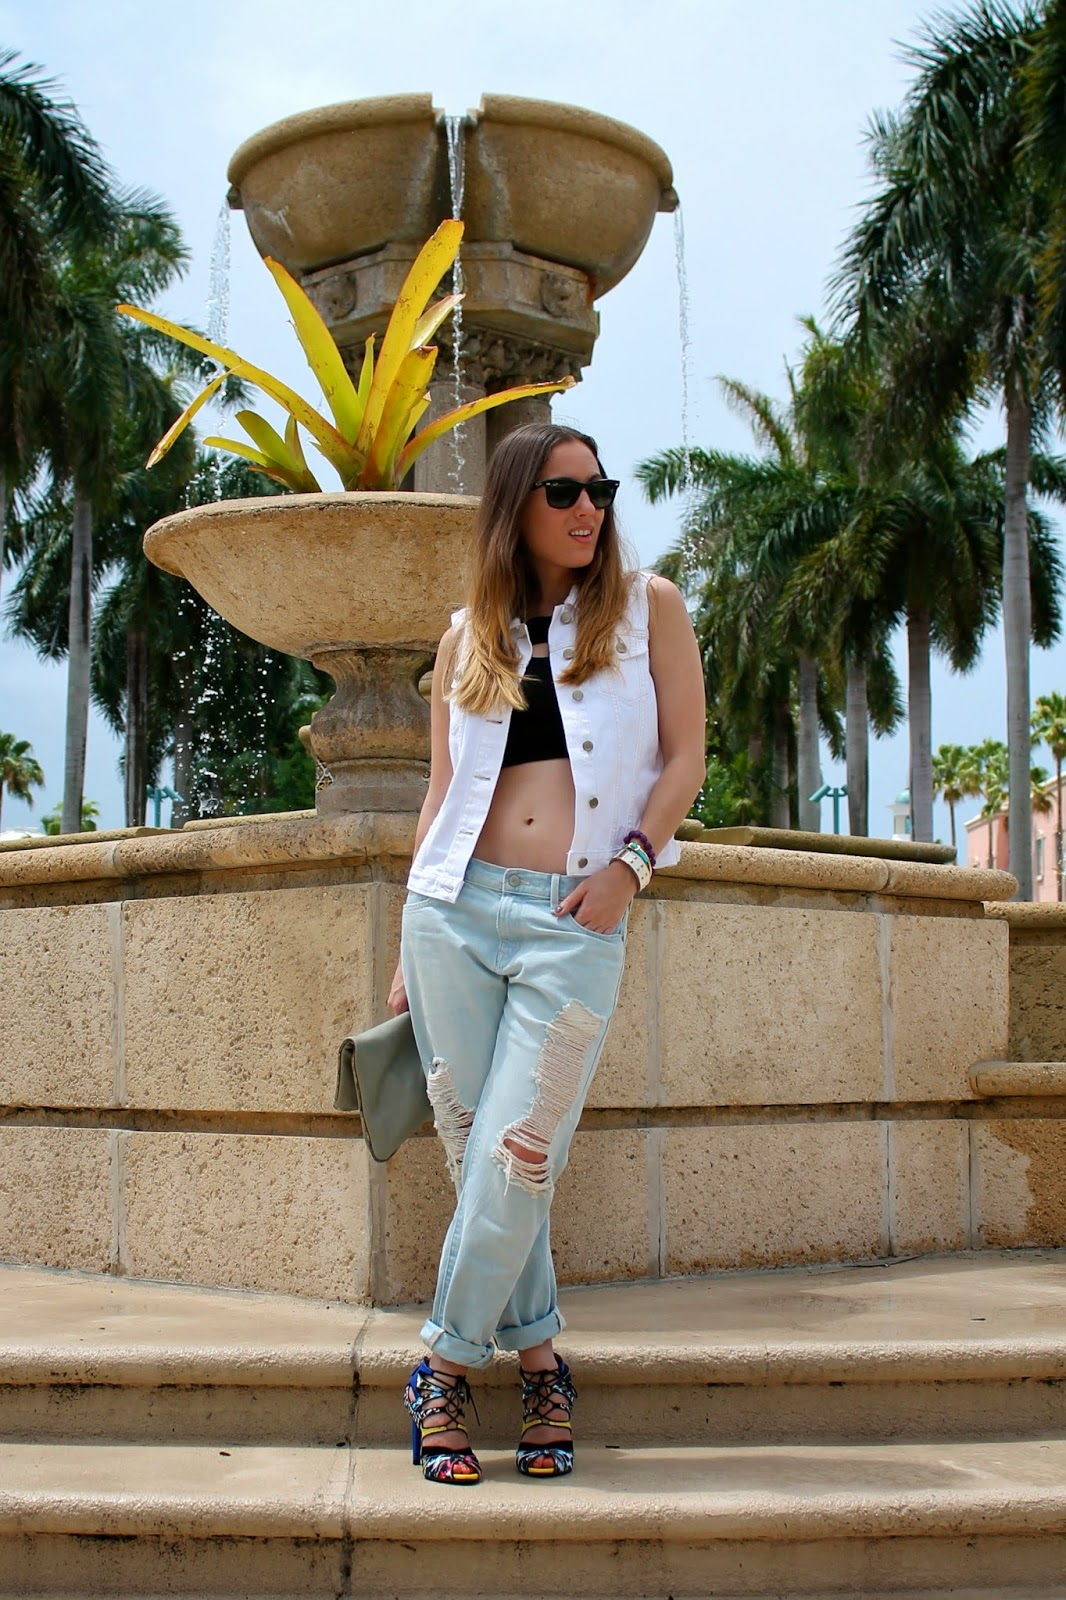 Gap, LF Stores, Zara, BCBGeneration, Nordstrom, Kate Spade, Ray-Ban, Miami fashion blogger, fashion blog, style blog, street style, classic, prep, distressed denim, denim vest, summer style,Gap Lincoln Road